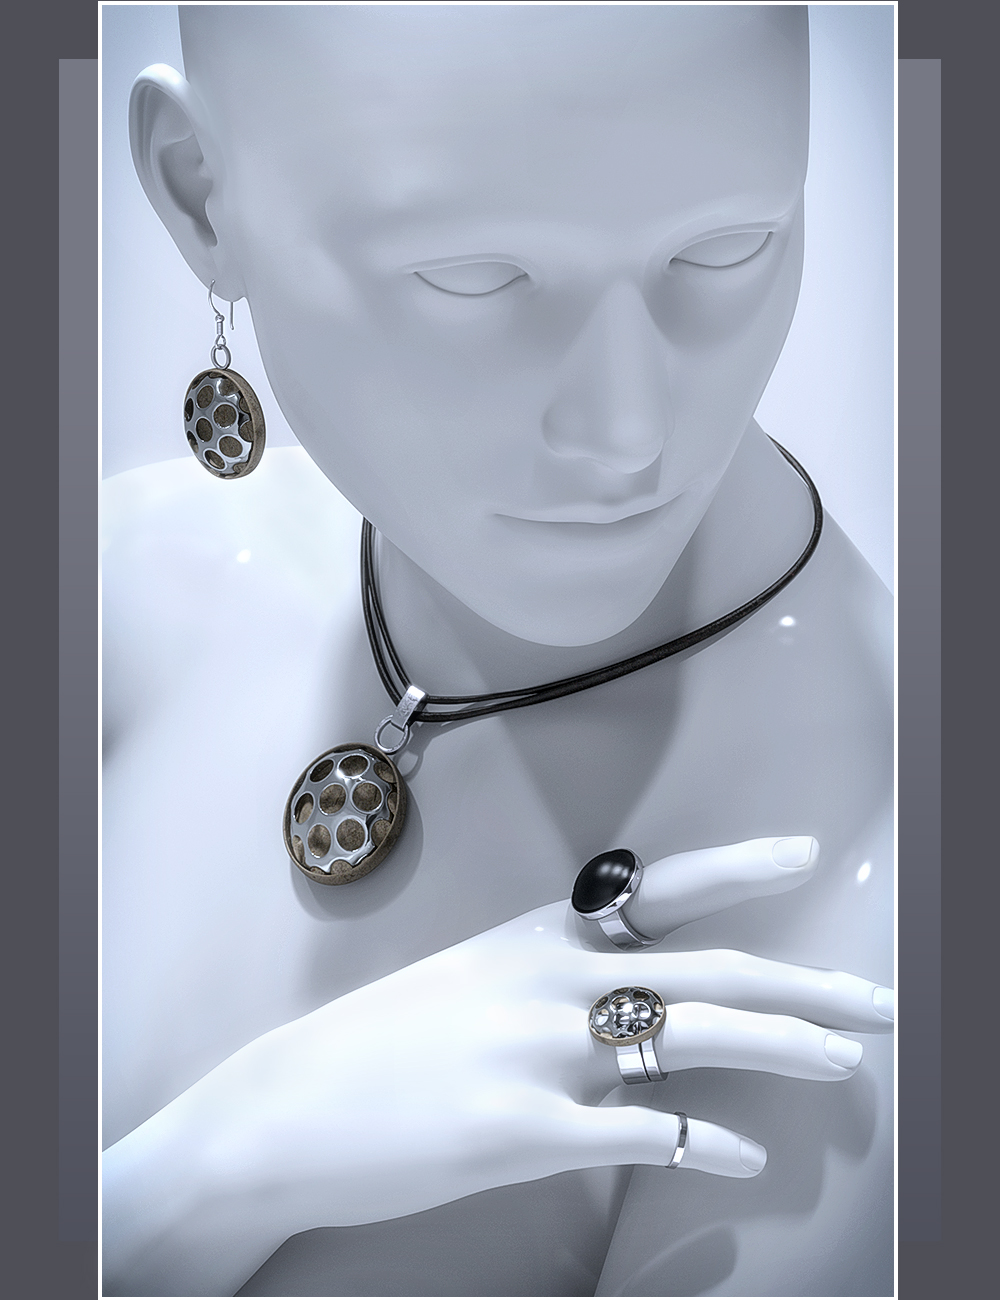 ES Jewelry Collection by: EyeStorm, 3D Models by Daz 3D